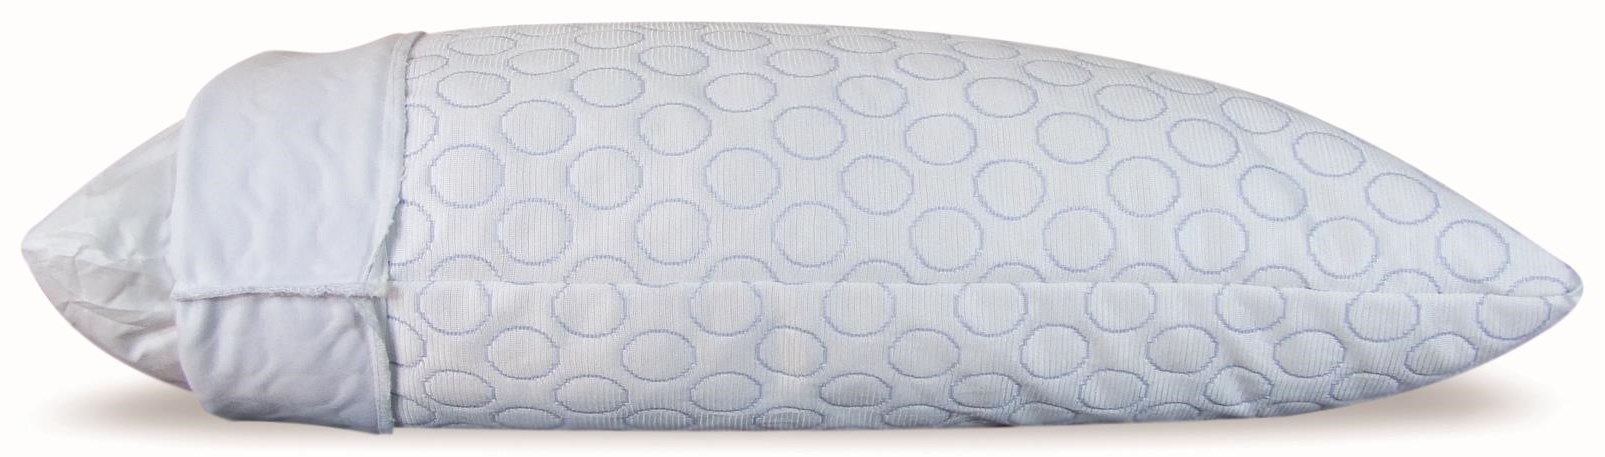 King Ice Comfort PIllow Protector